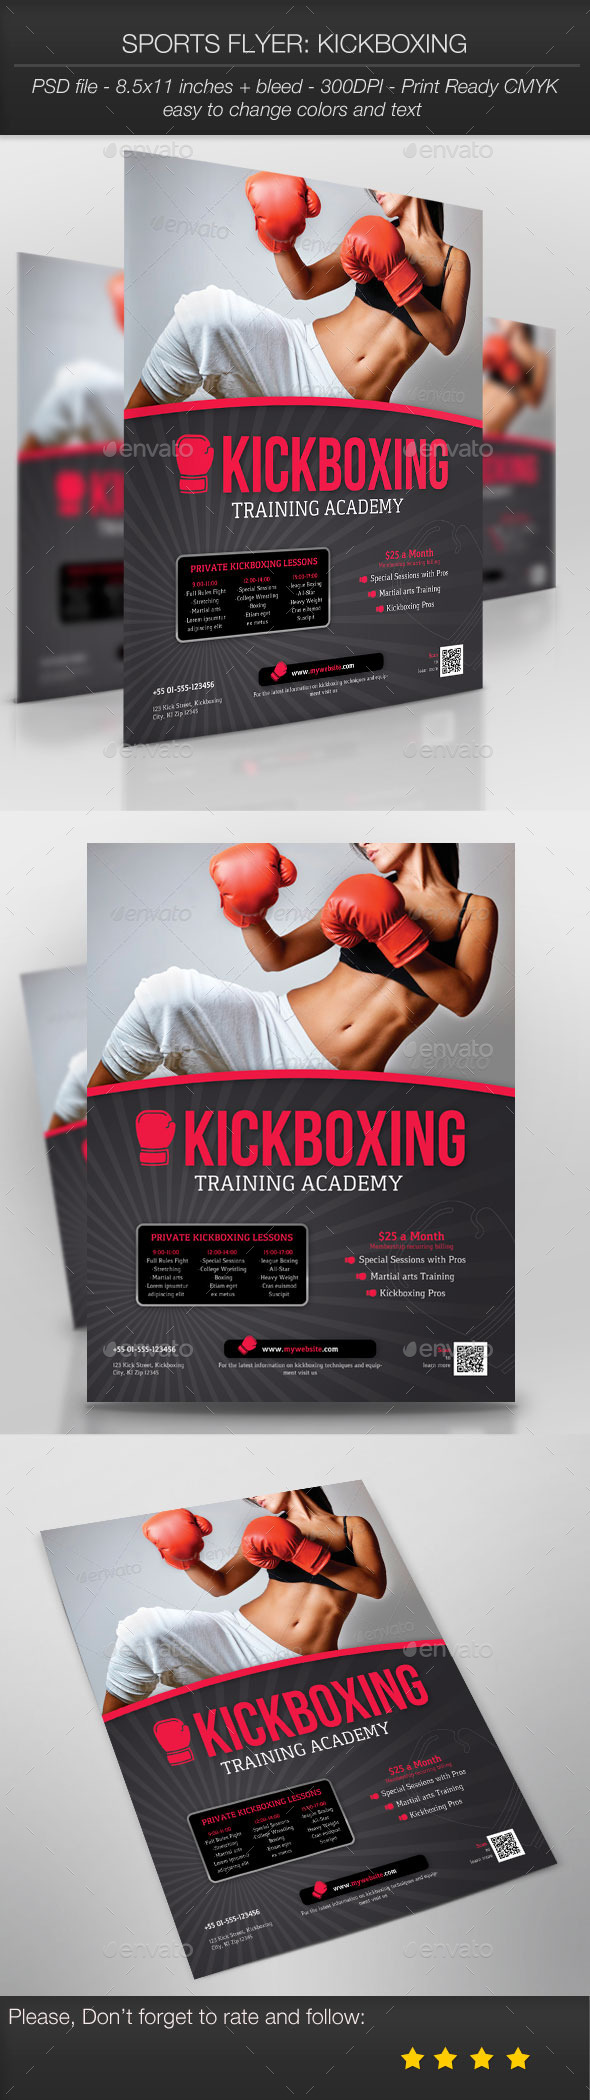 GraphicRiver Sports Flyer Kickboxing 9953604